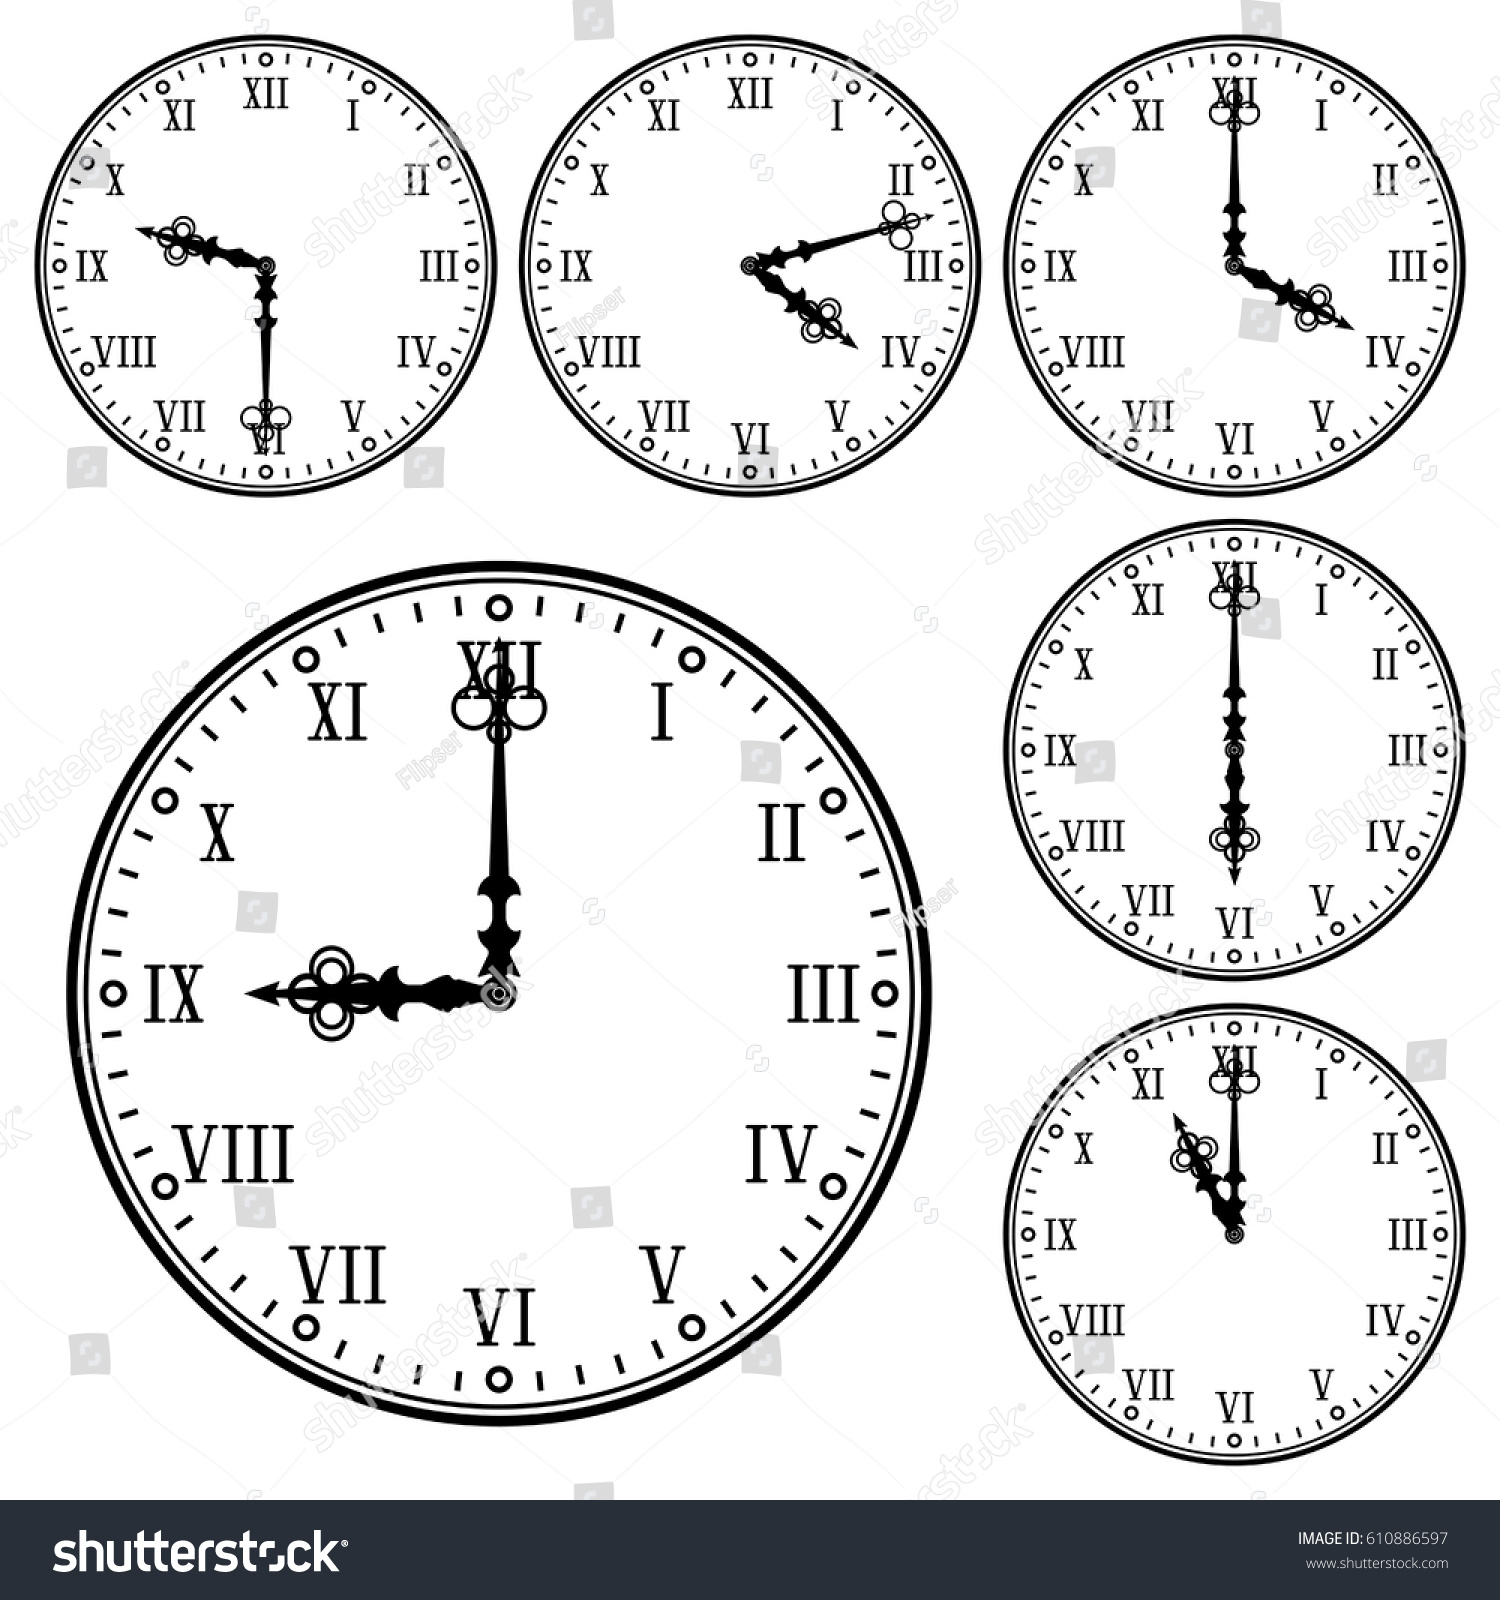 Clock Roman Numerals Collection Different Time Stock